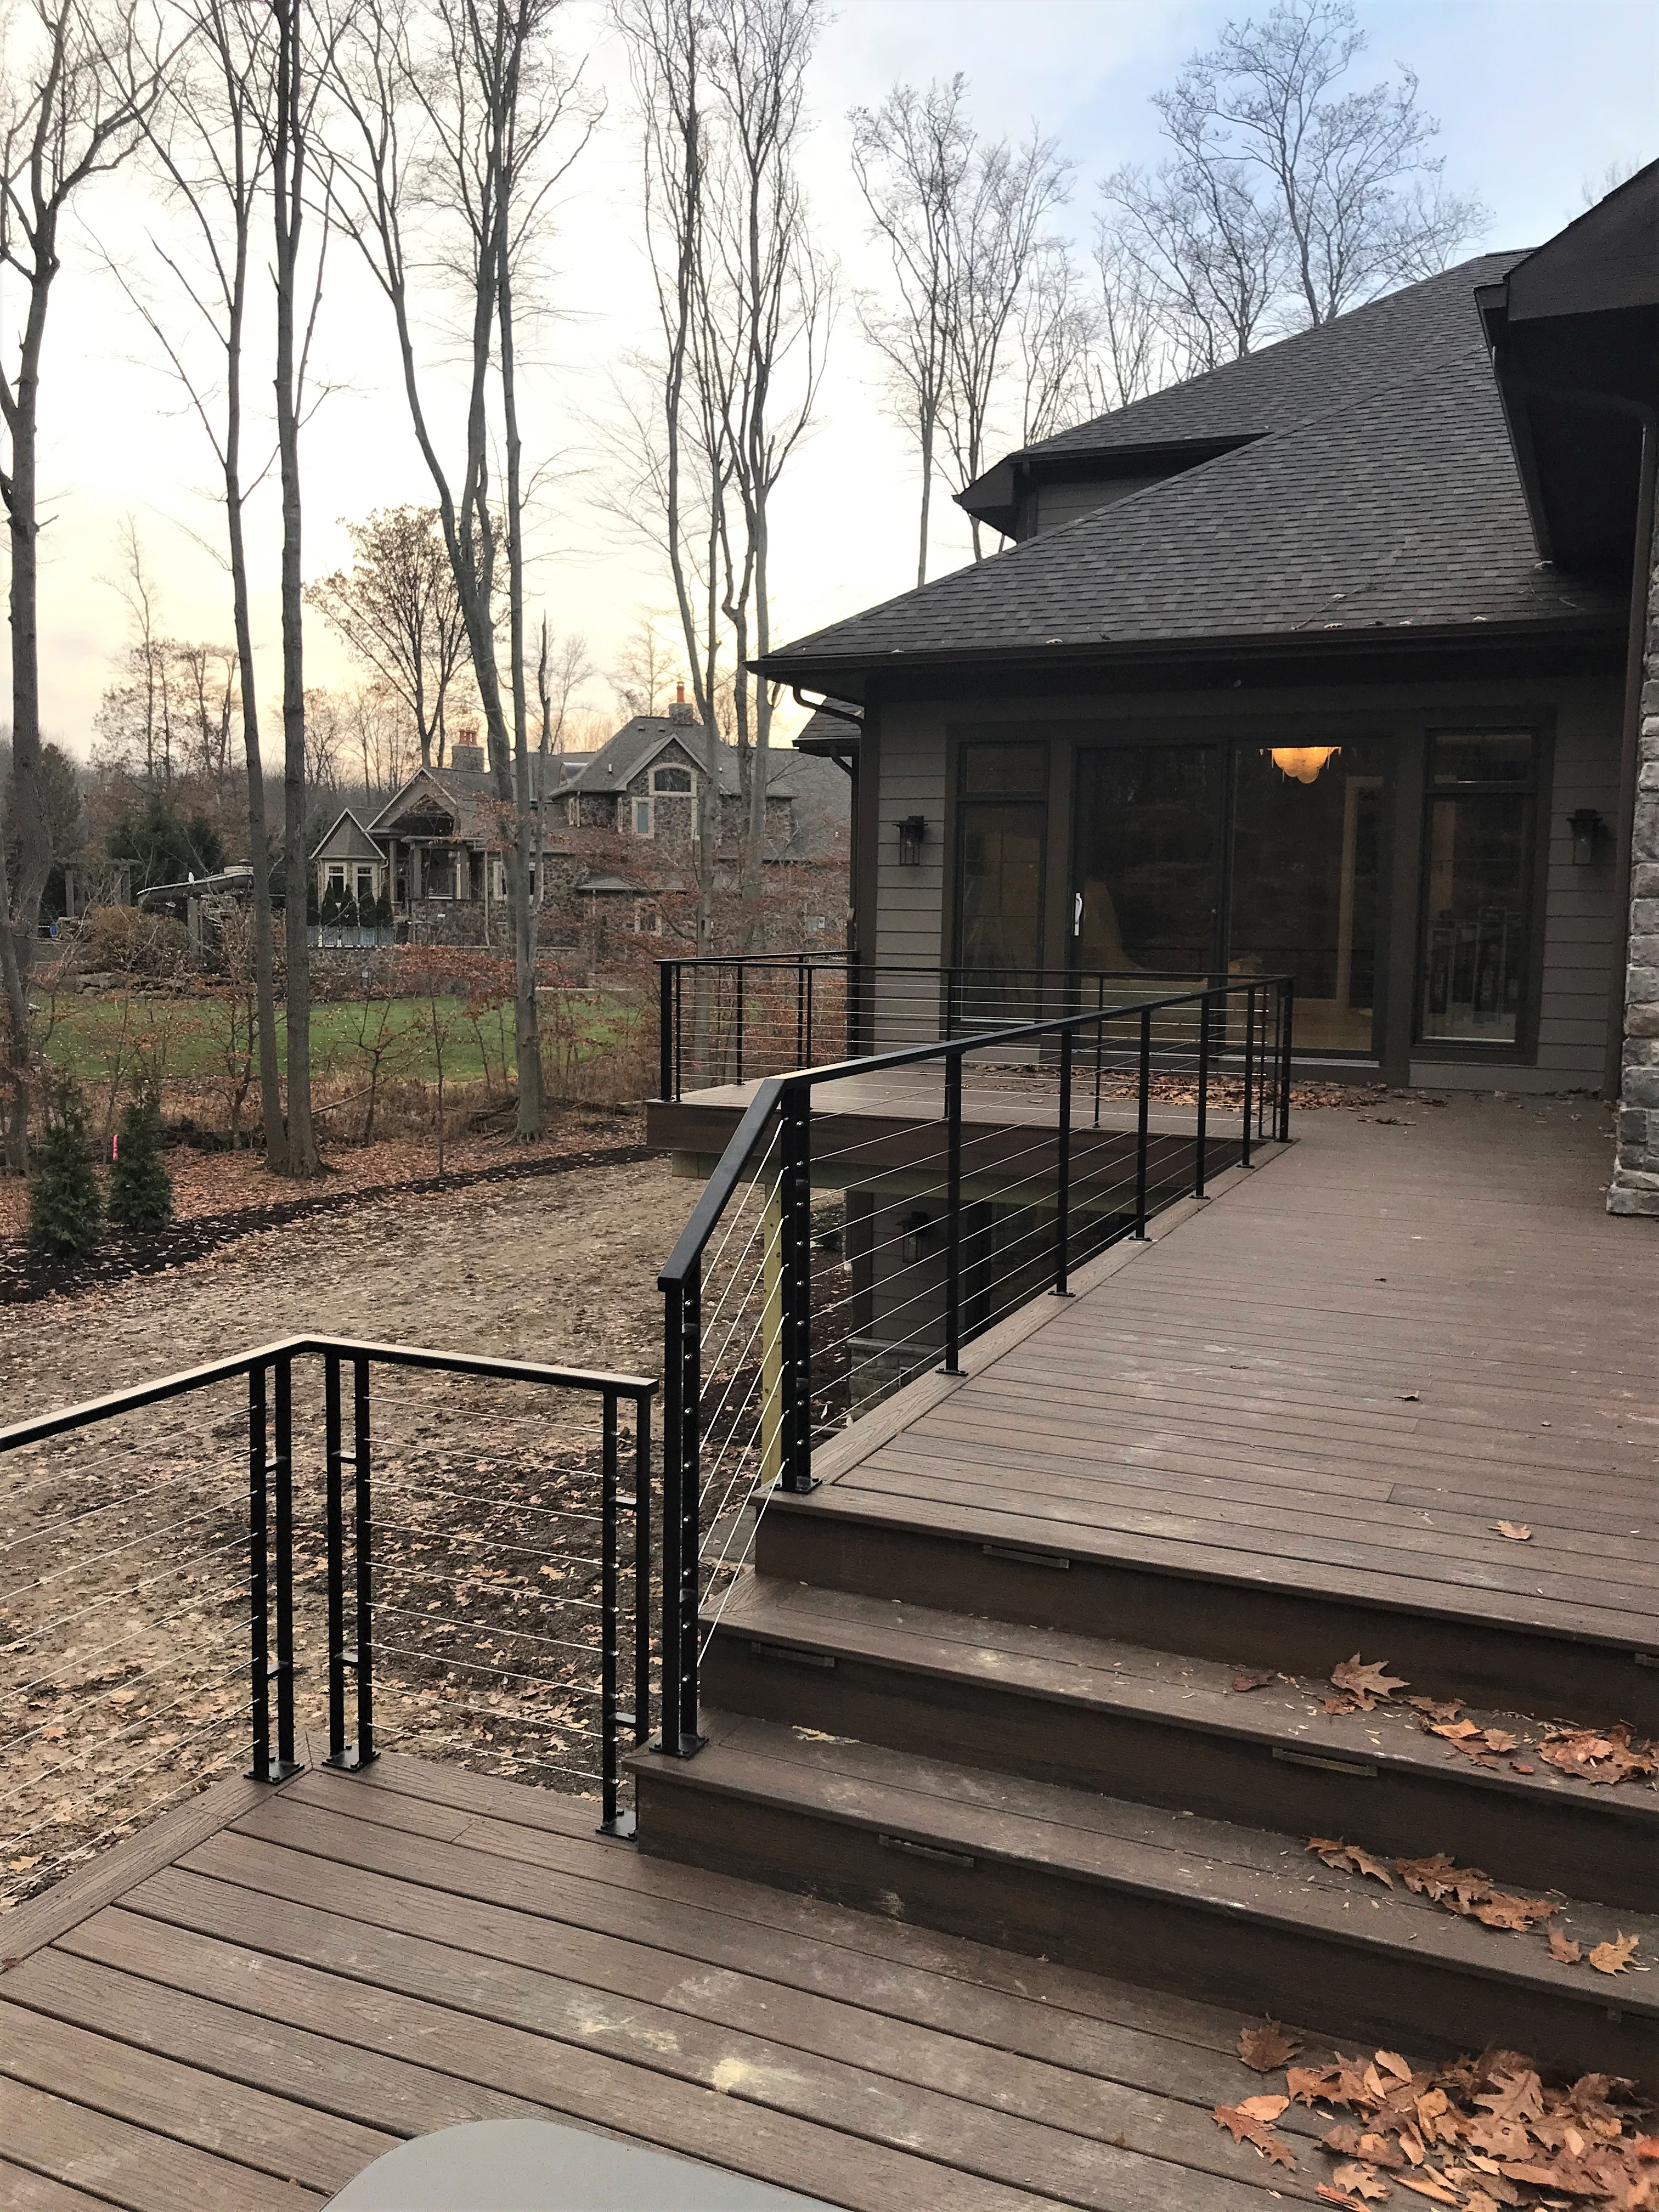 Exterior Contemporary Railings Finelli Ironworks   Modern Outdoor Stair Railing   Stainless Steel   Commercial   Balcony   Minimalist   Decorative